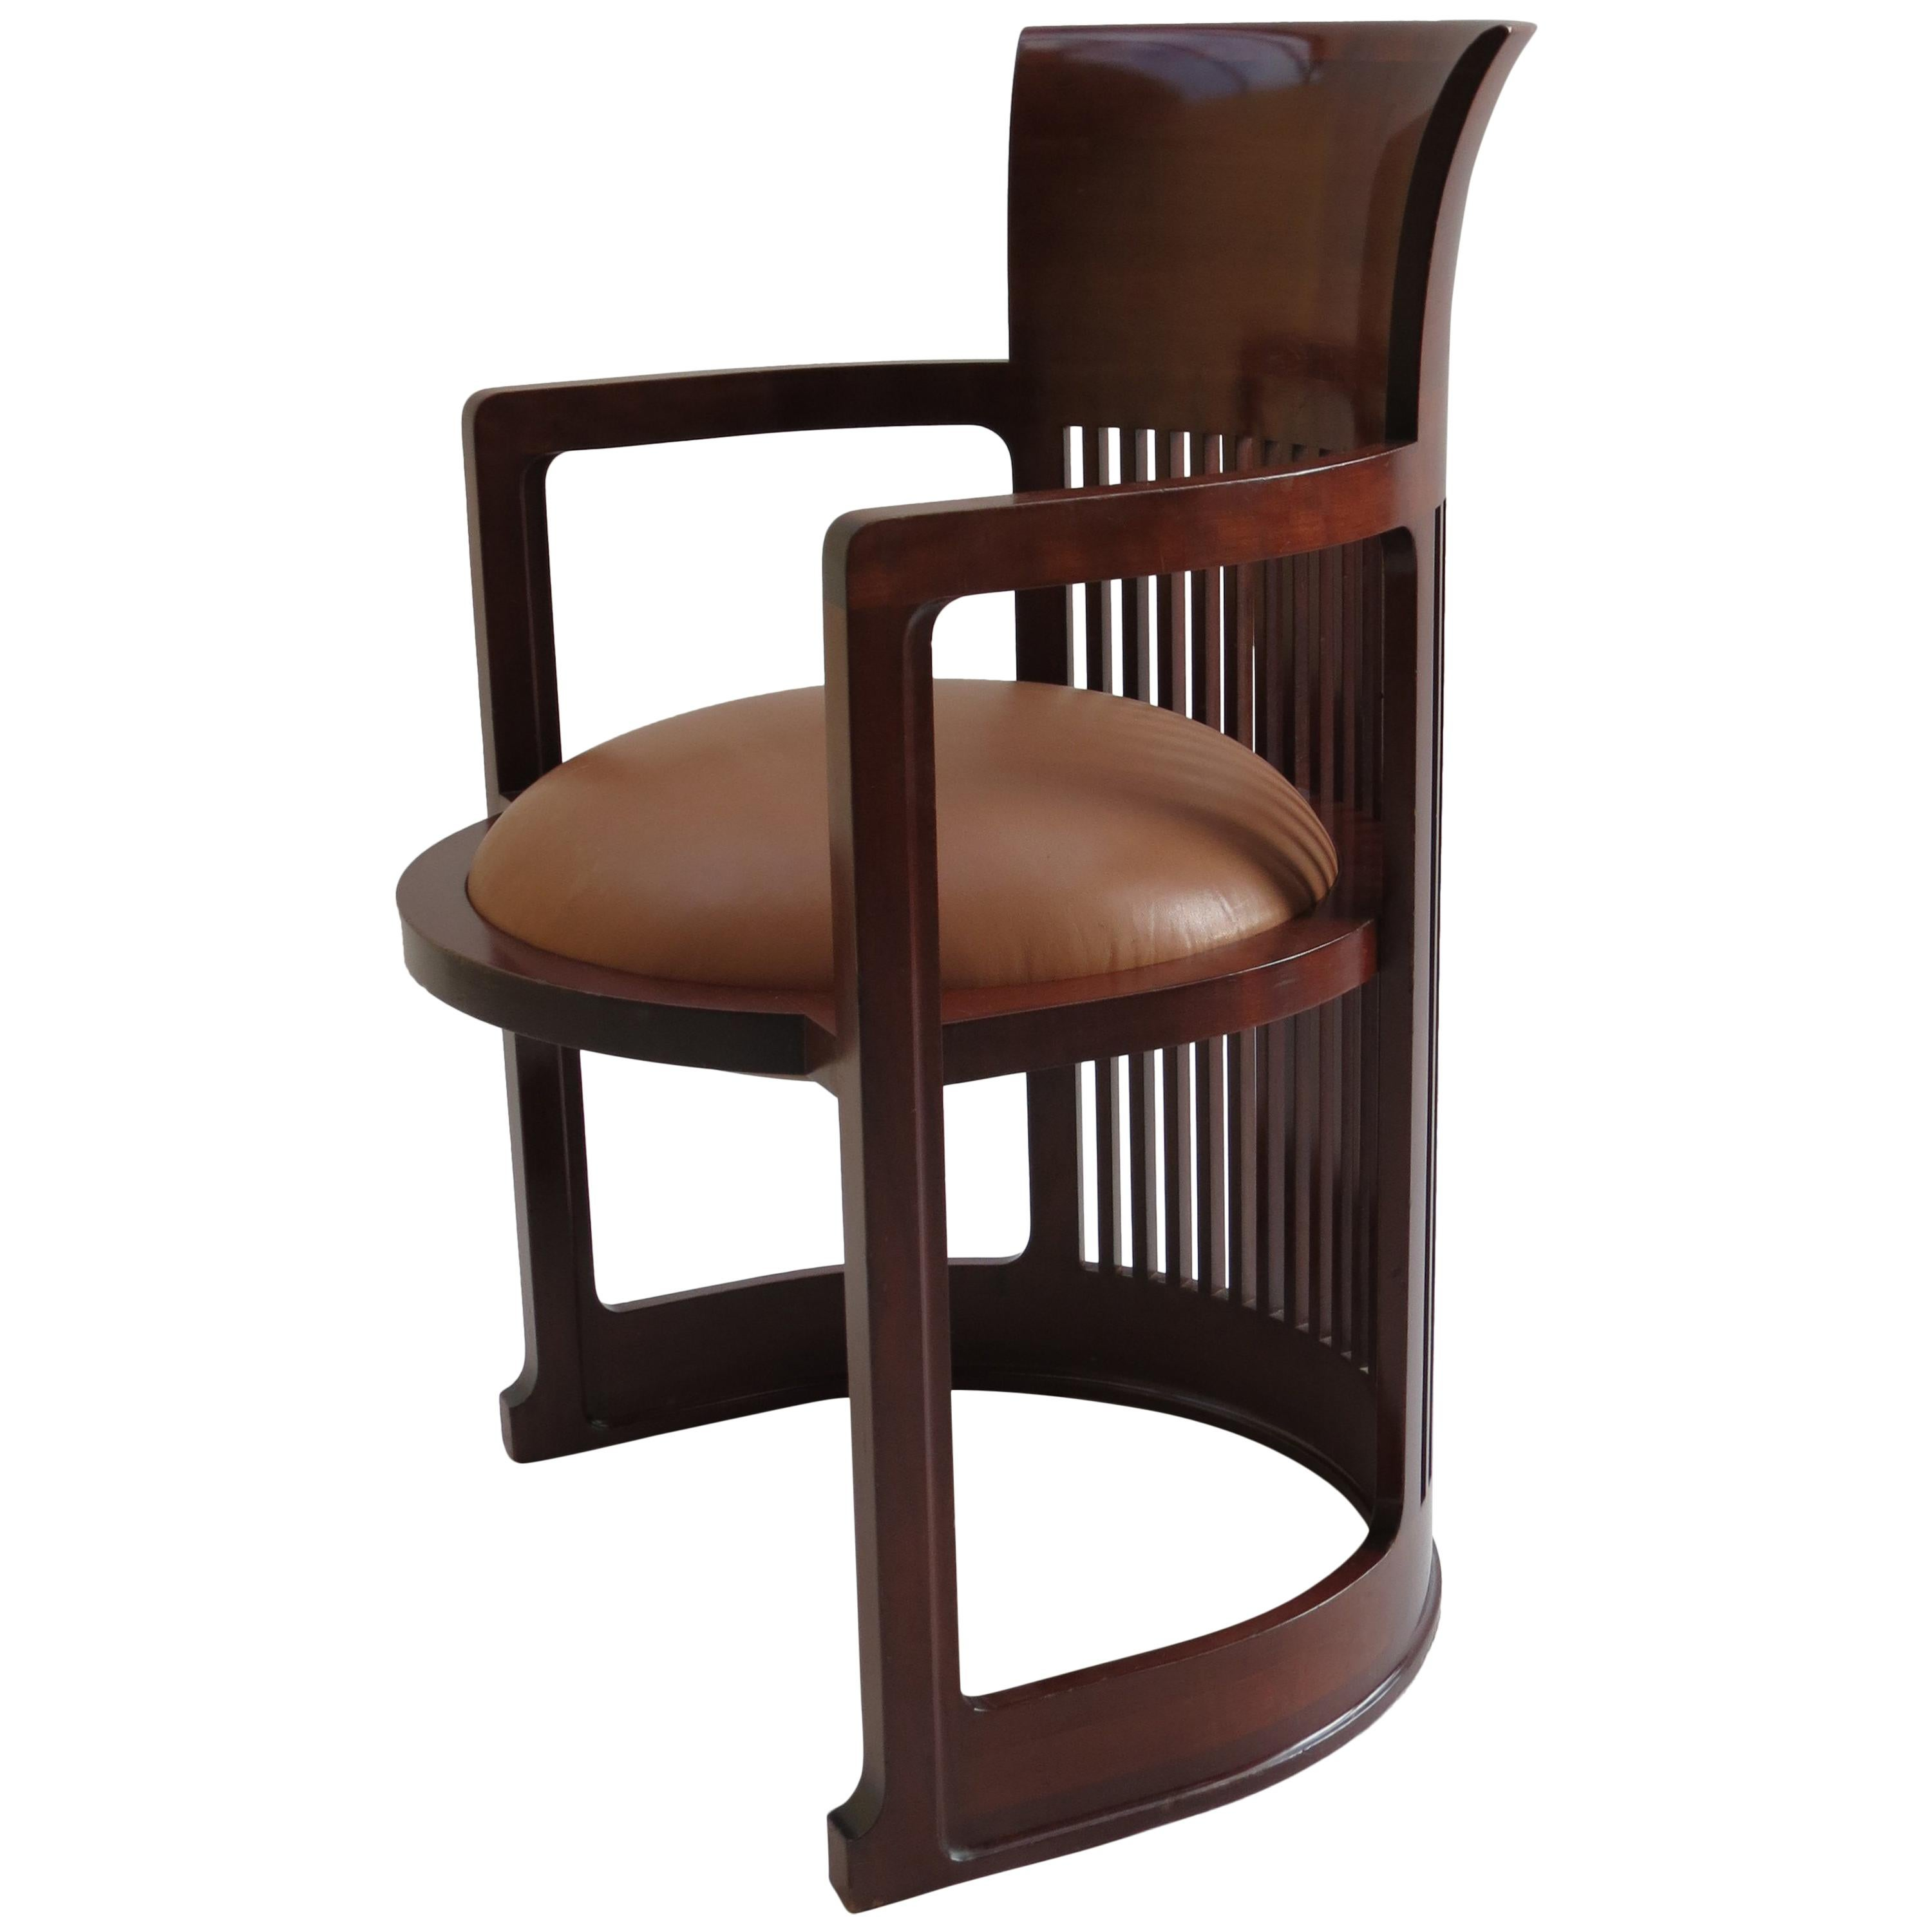 frank lloyd wright chairs heywood wakefield 1980s cassina barrel taliesin chair designed by cherrywood for sale